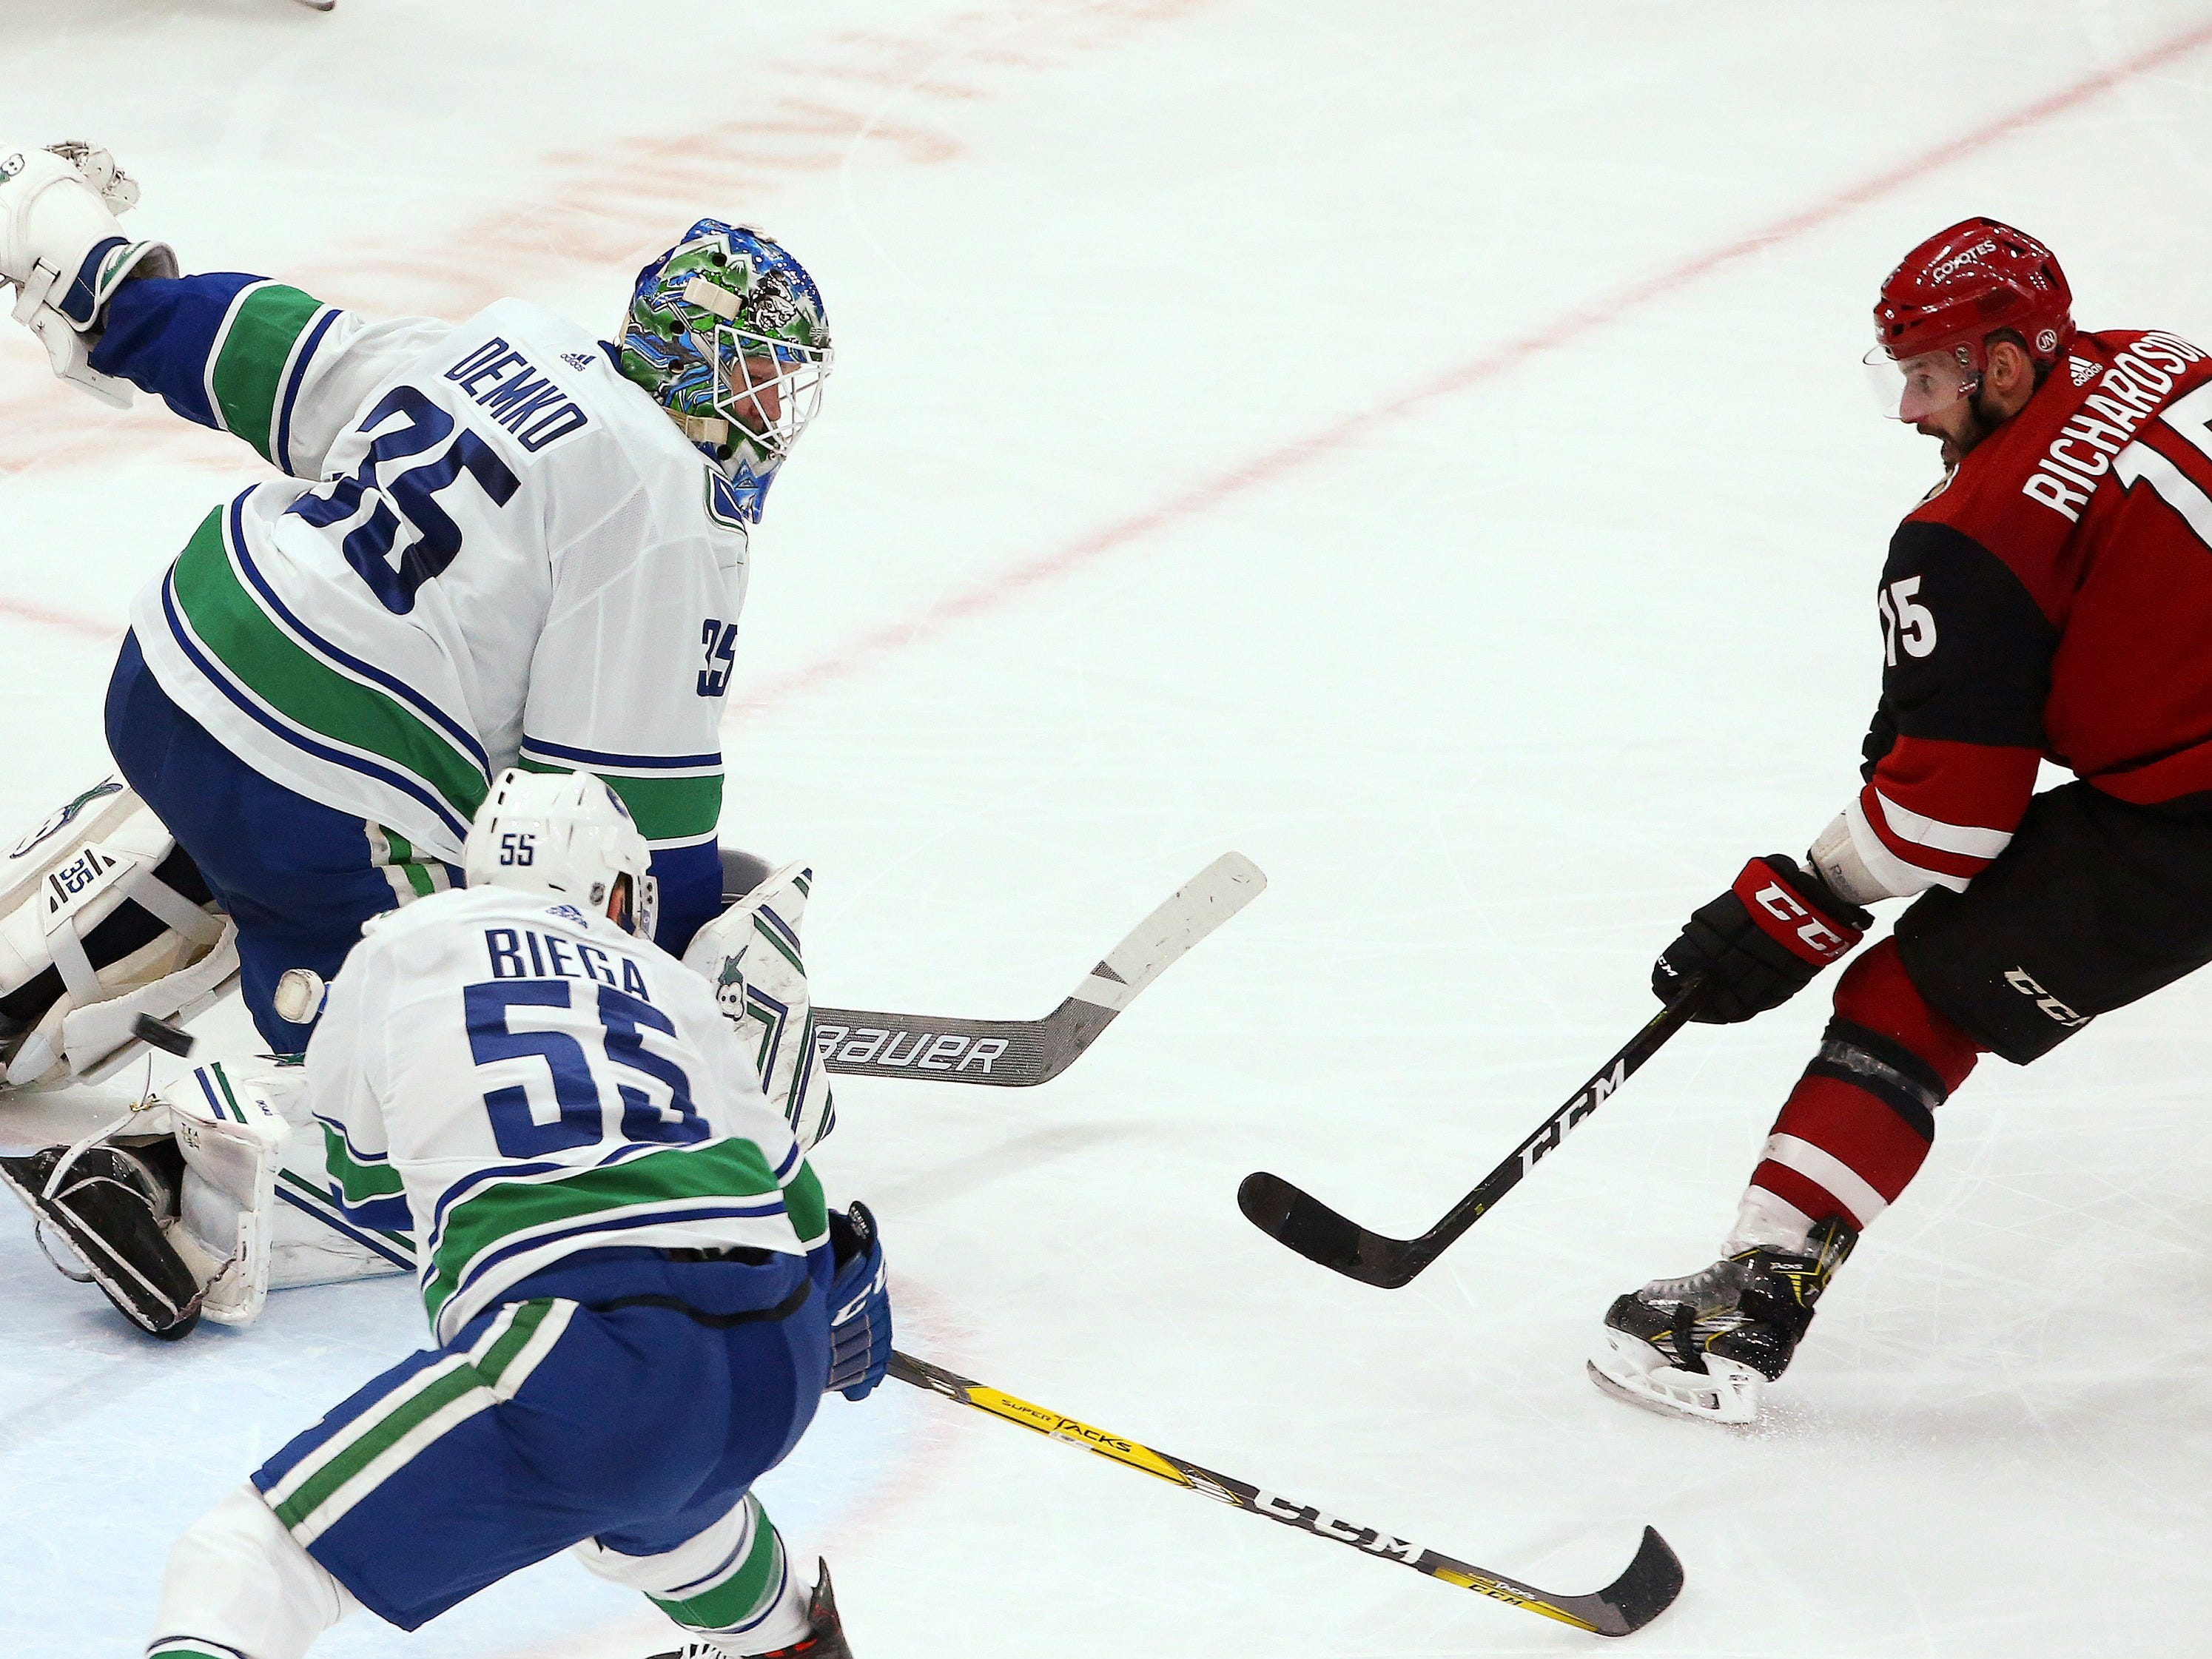 Arizona Coyotes center Brad Richardson, right, sends the puck past Vancouver Canucks goaltender Thatcher Demko (35) and defenseman Alex Biega (55) for a goal, to earn a hat trick during the second period of an NHL hockey game Thursday, Feb. 28, 2019, in Glendale, Ariz.